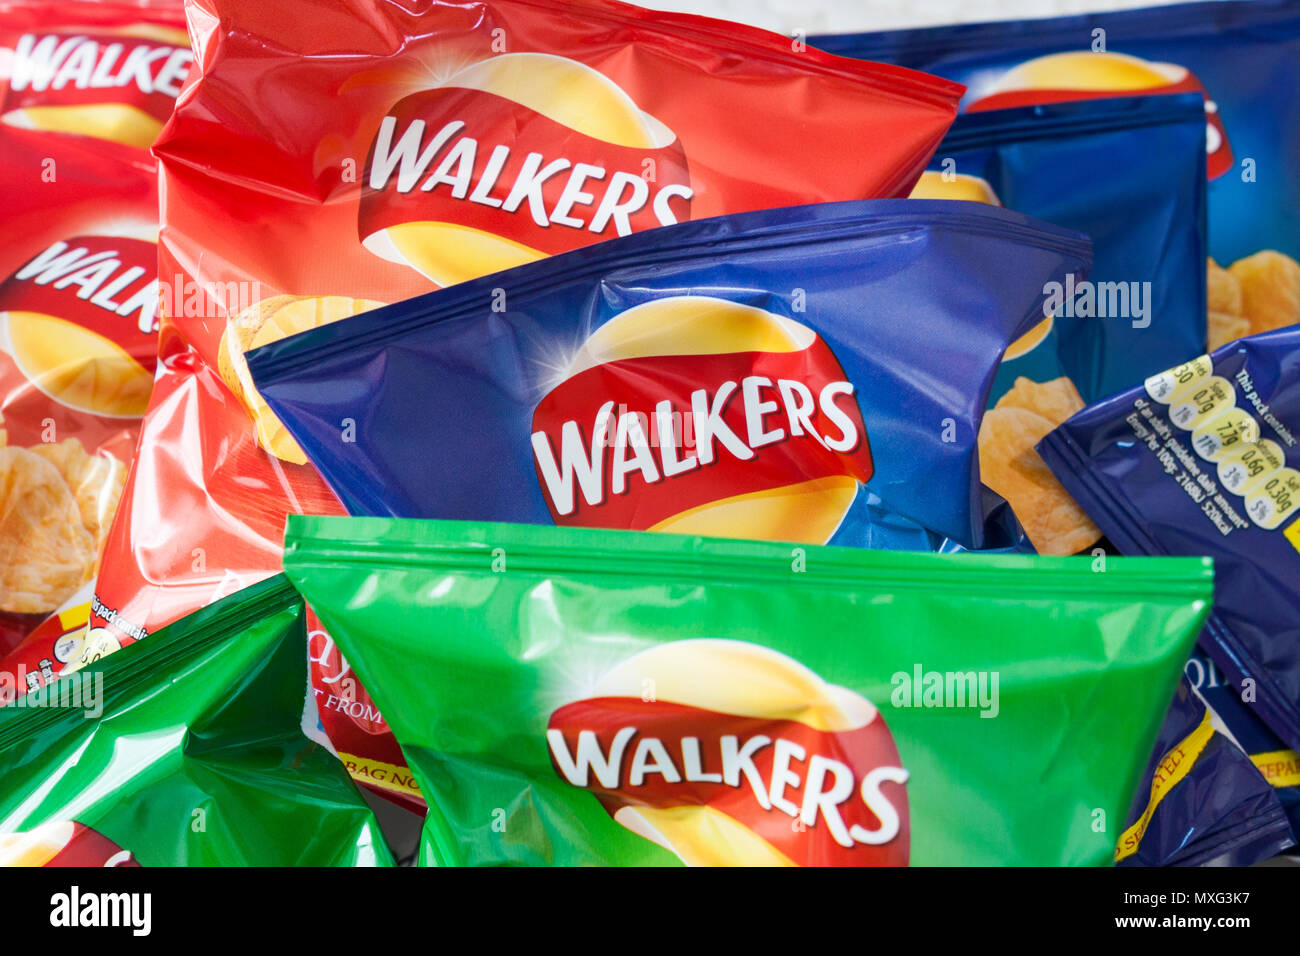 Walkers crisps packets assorted flavours Stock Photo